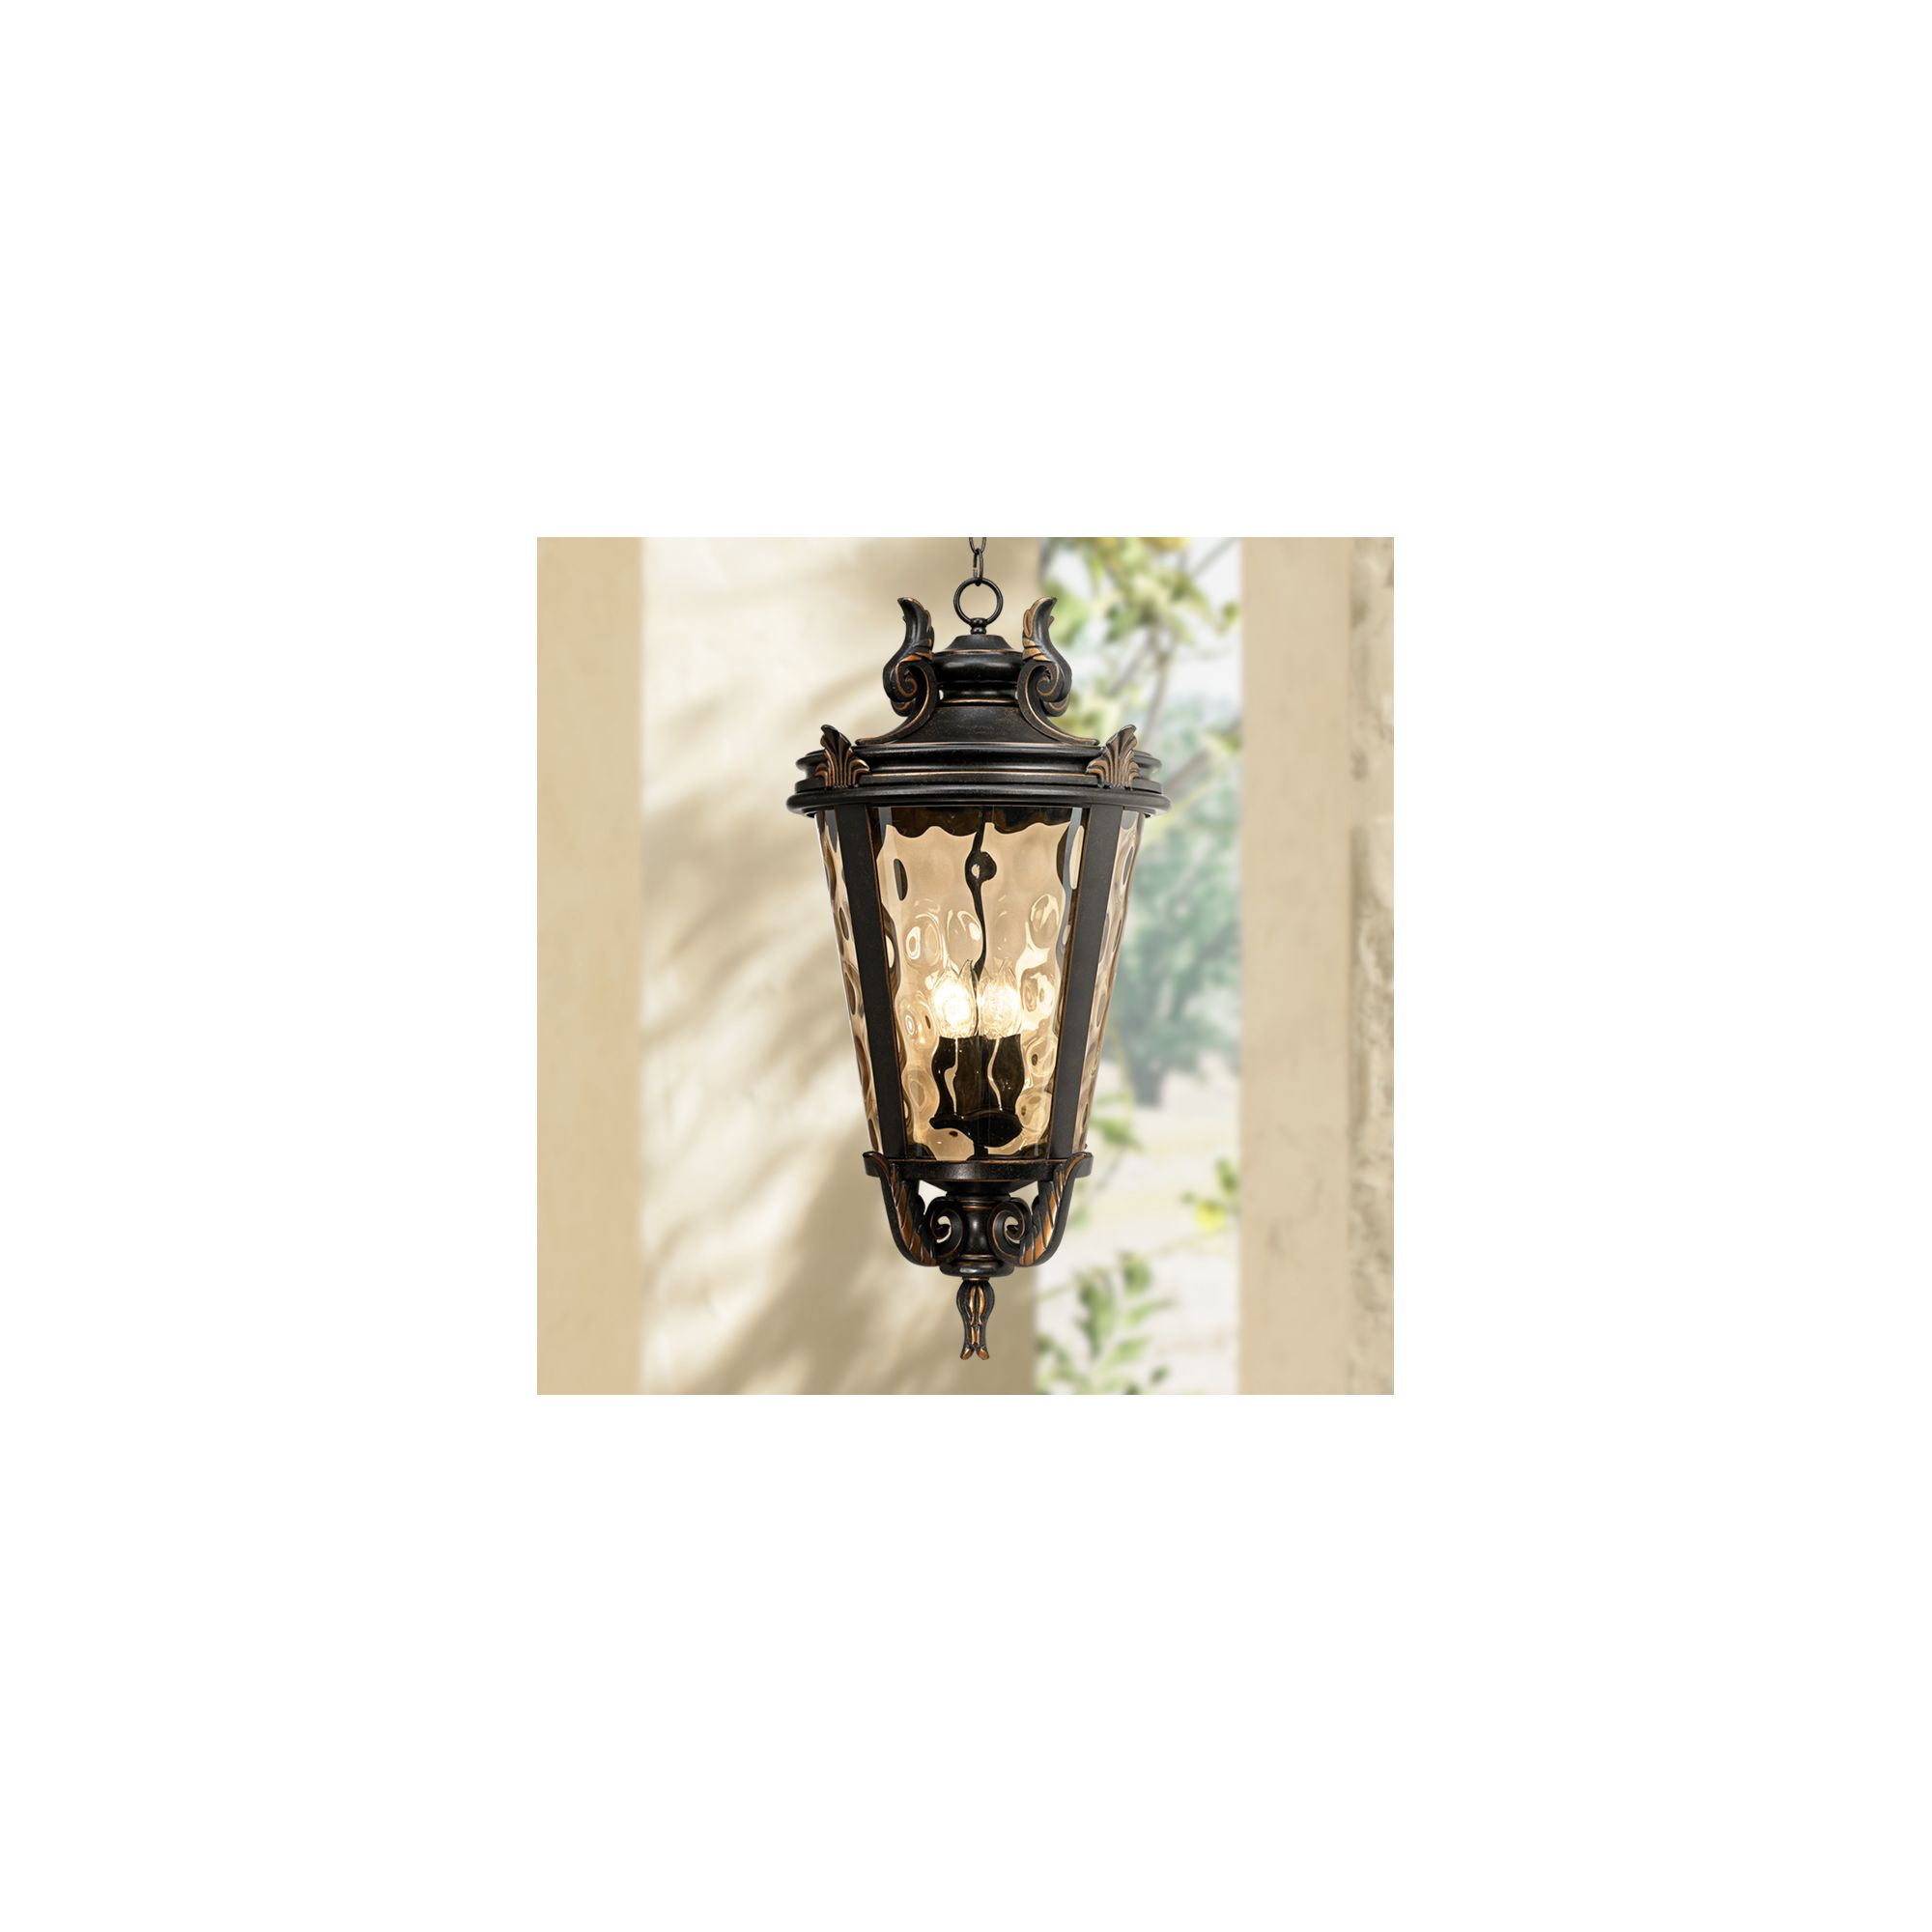 john timberland traditional outdoor ceiling light hanging veranda bronze 30 champagne hammered glass damp rated for porch patio walmart com